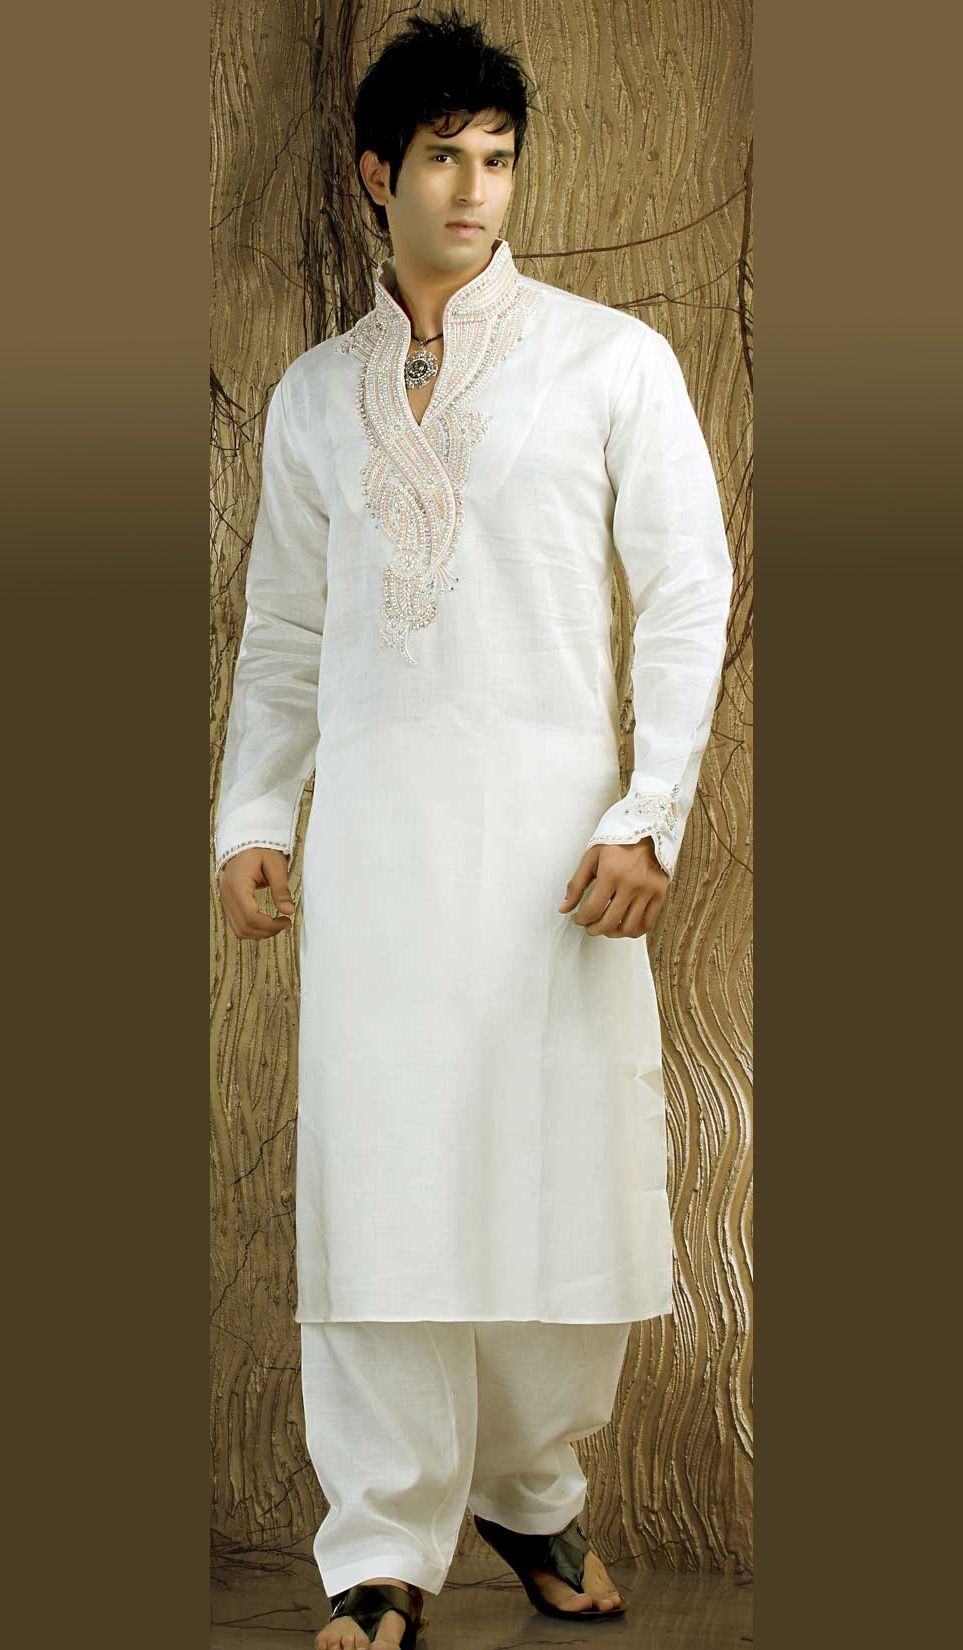 Off-White-Linen-Kurta-Pajama-with-Nice-Embroidery | men wedding ...